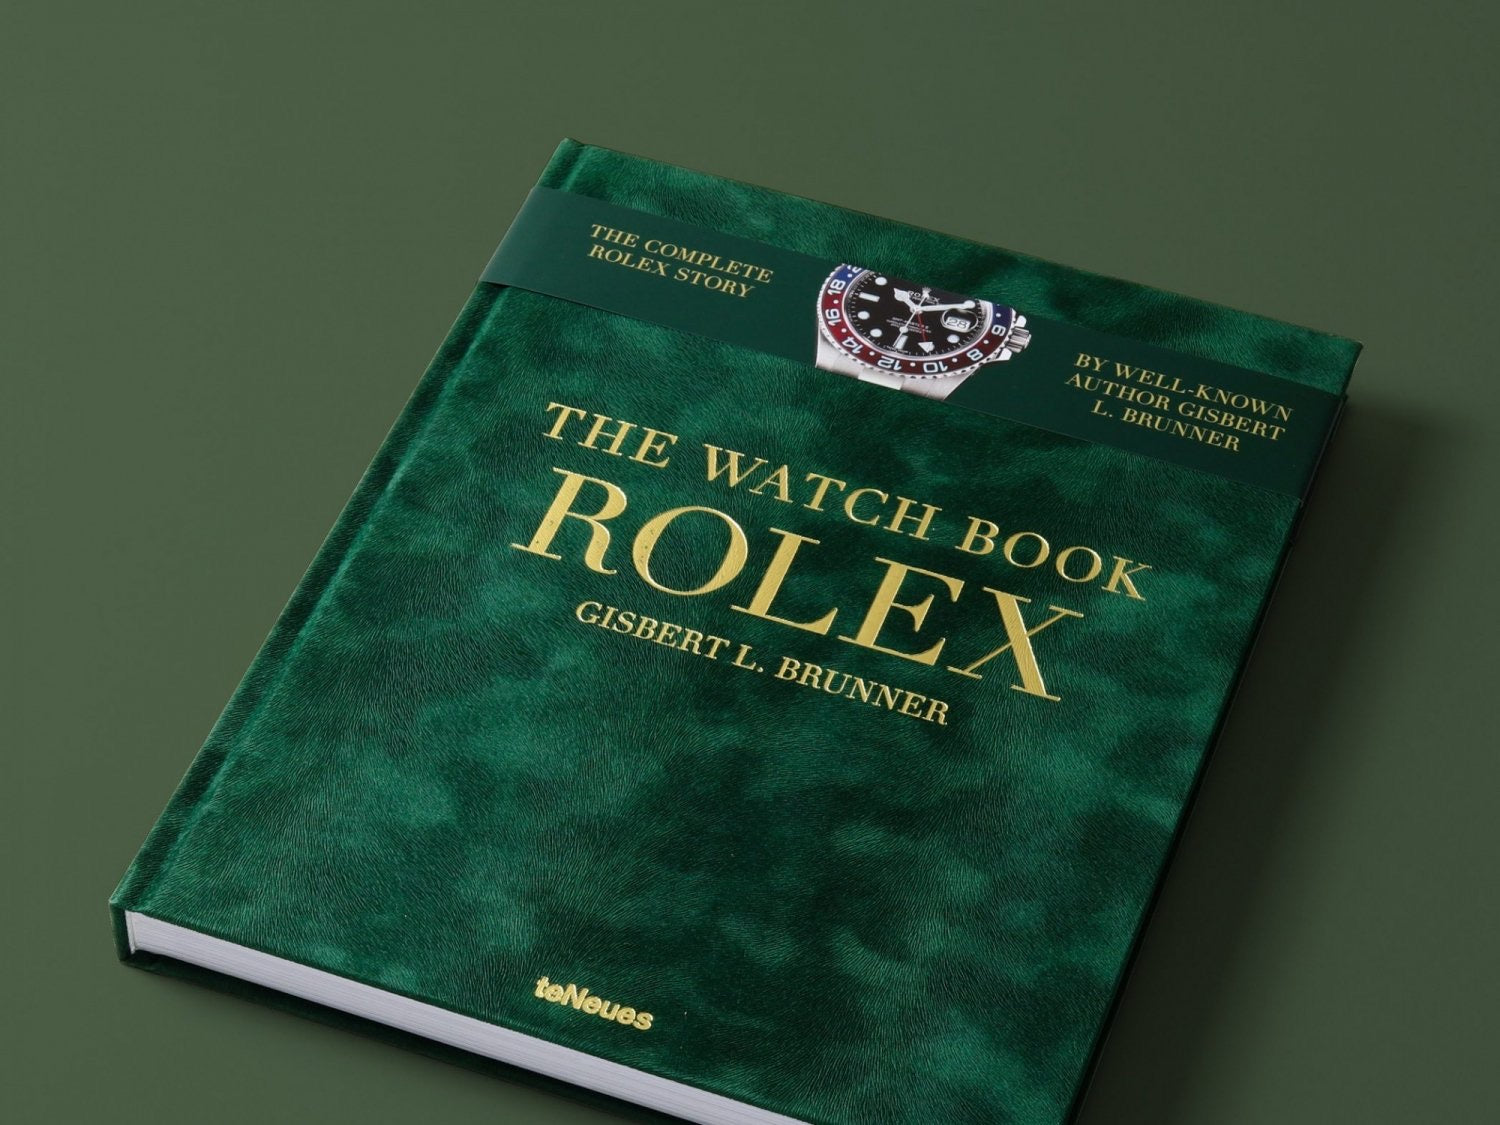 Rolex watch book